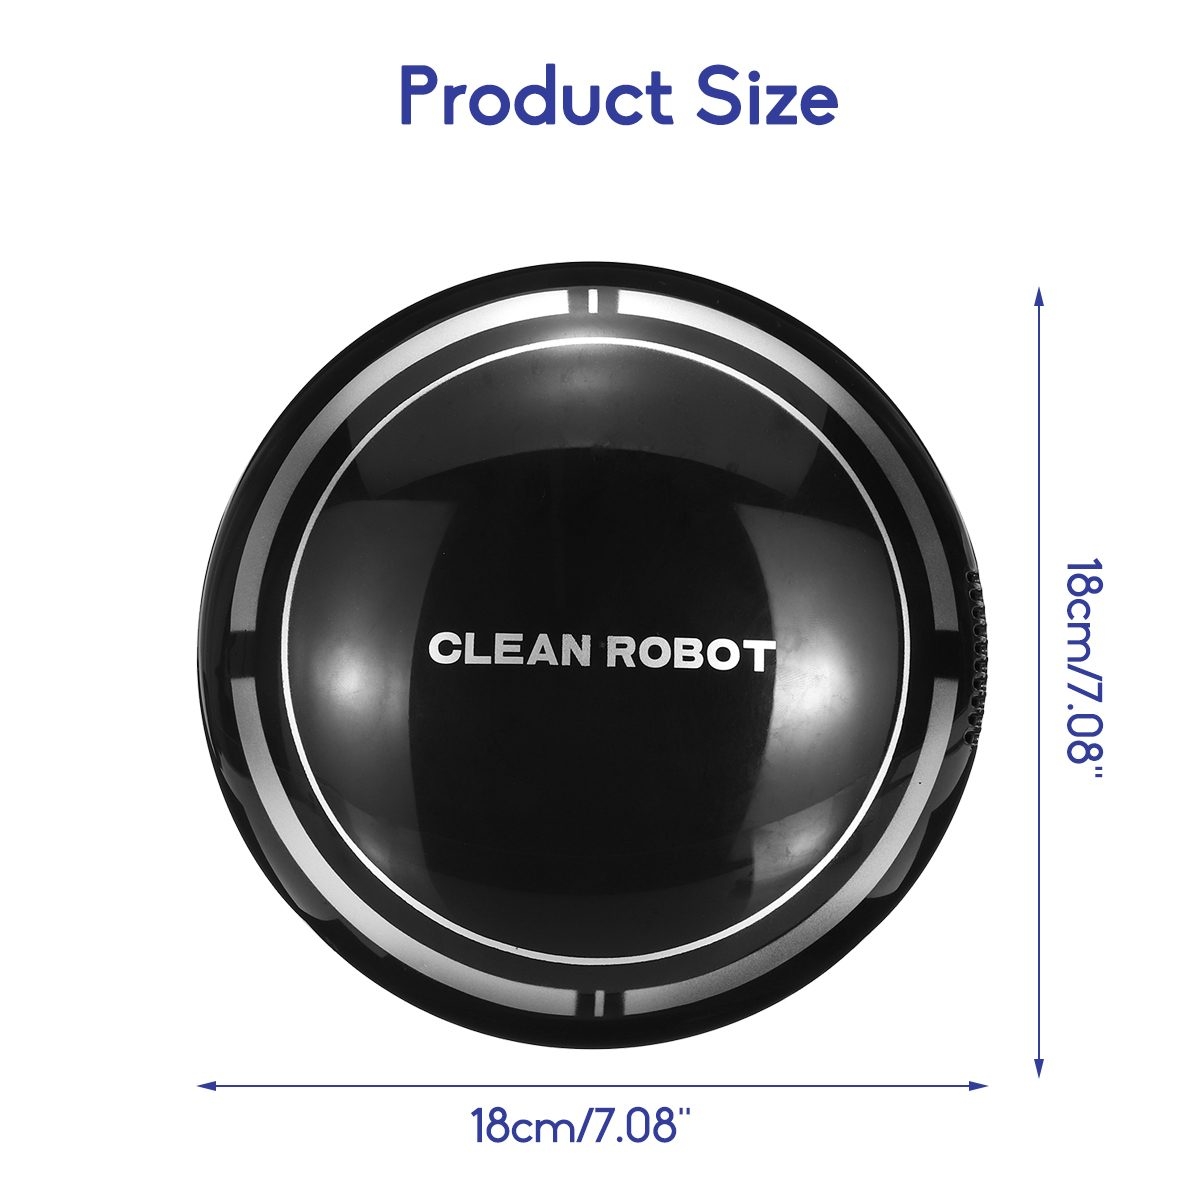 H04373bb1eea54f4ca80e255d67a8f311T Smart Automatic Robot Vacuum Cleaning Machine Intelligent Floor Sweeping Dust Catcher Carpet Cleaner For Home Automatic Cleaning